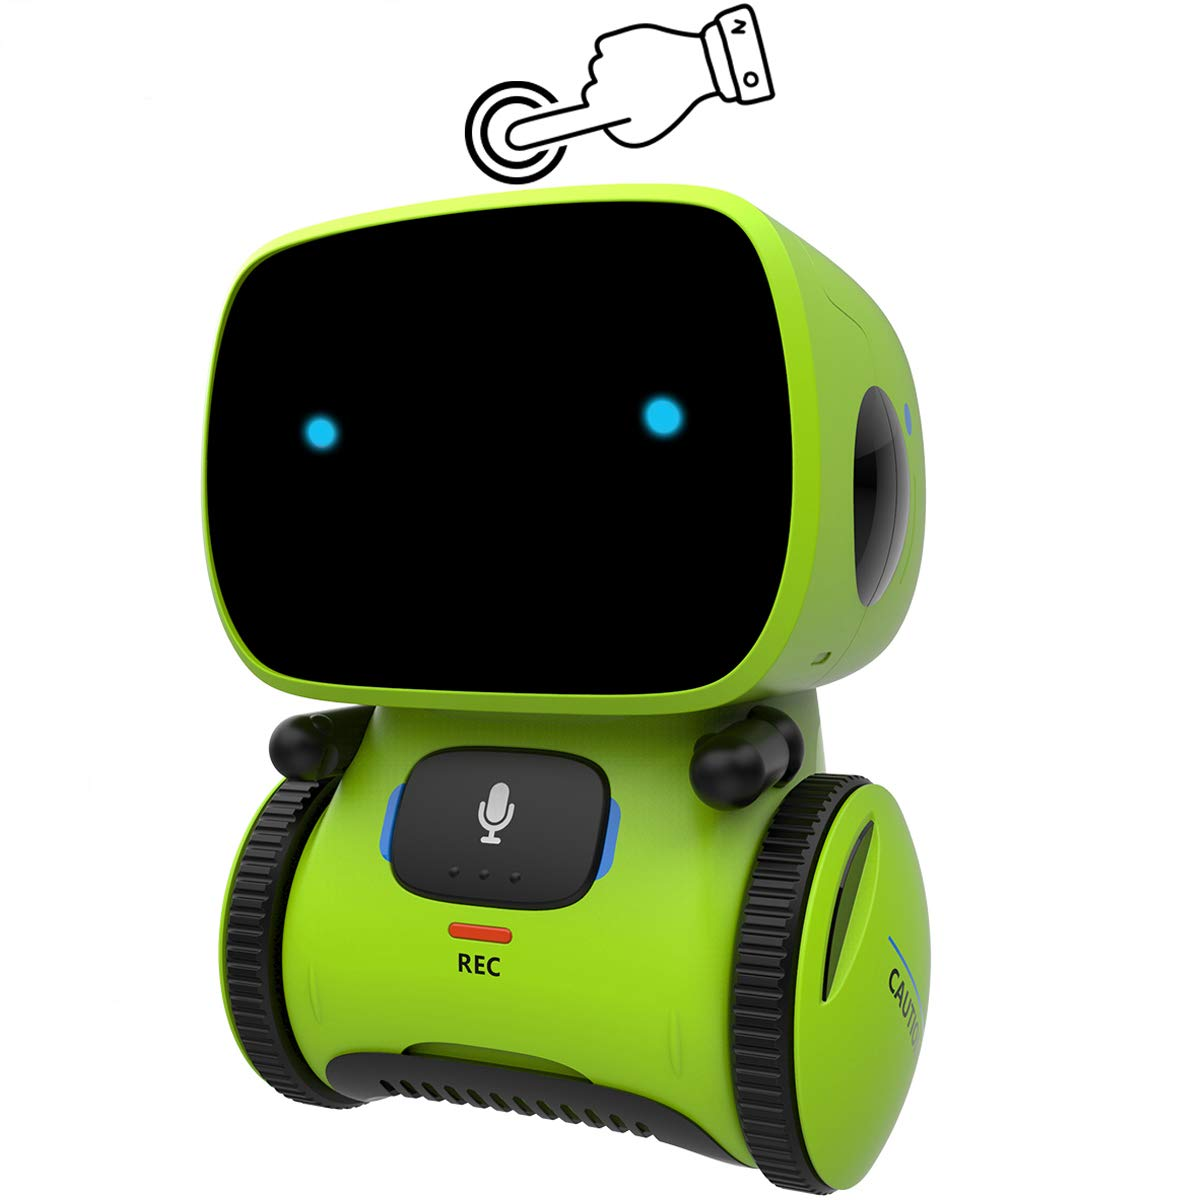 Gilobaby Kids Robot Toy, Talking Interactive Voice Controlled Touch Sensor Smart Robotics with Singing, Dancing, Repeating, Speech Recognition and Voice Recording, Gift for Kids Age 3+ (Green) by GILOBABY (Image #1)